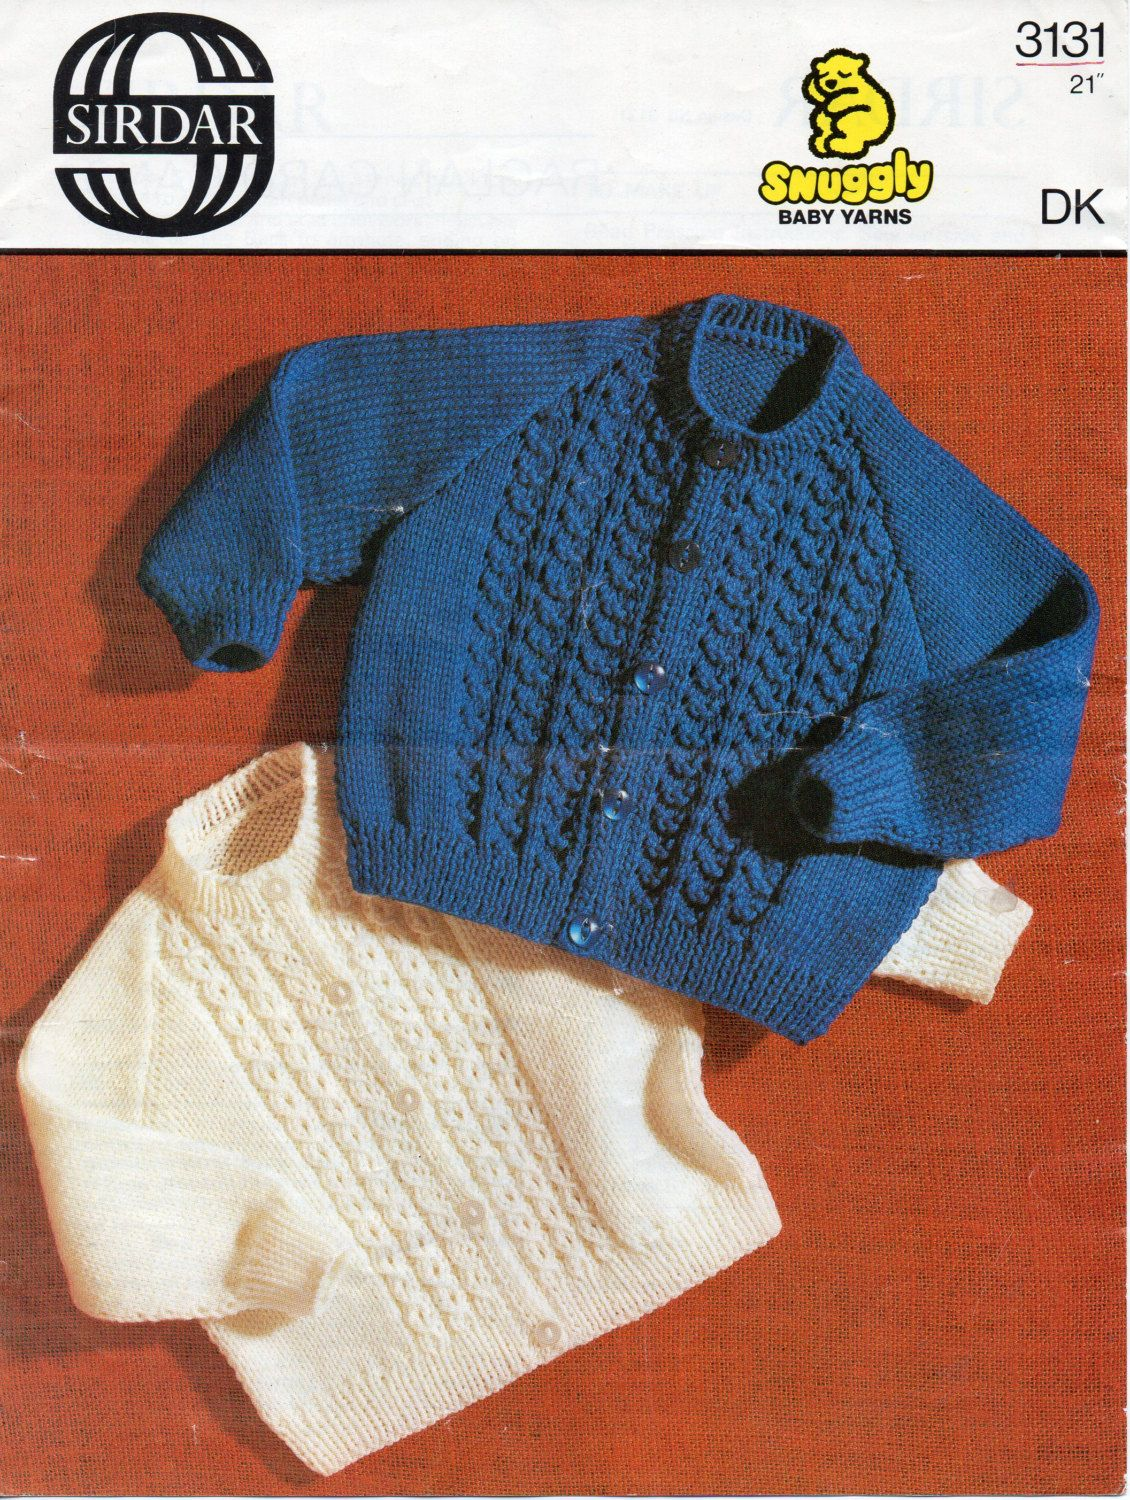 efa4f833a vintage baby cardigans knitting pattern pdf DK panel cable jackets ...